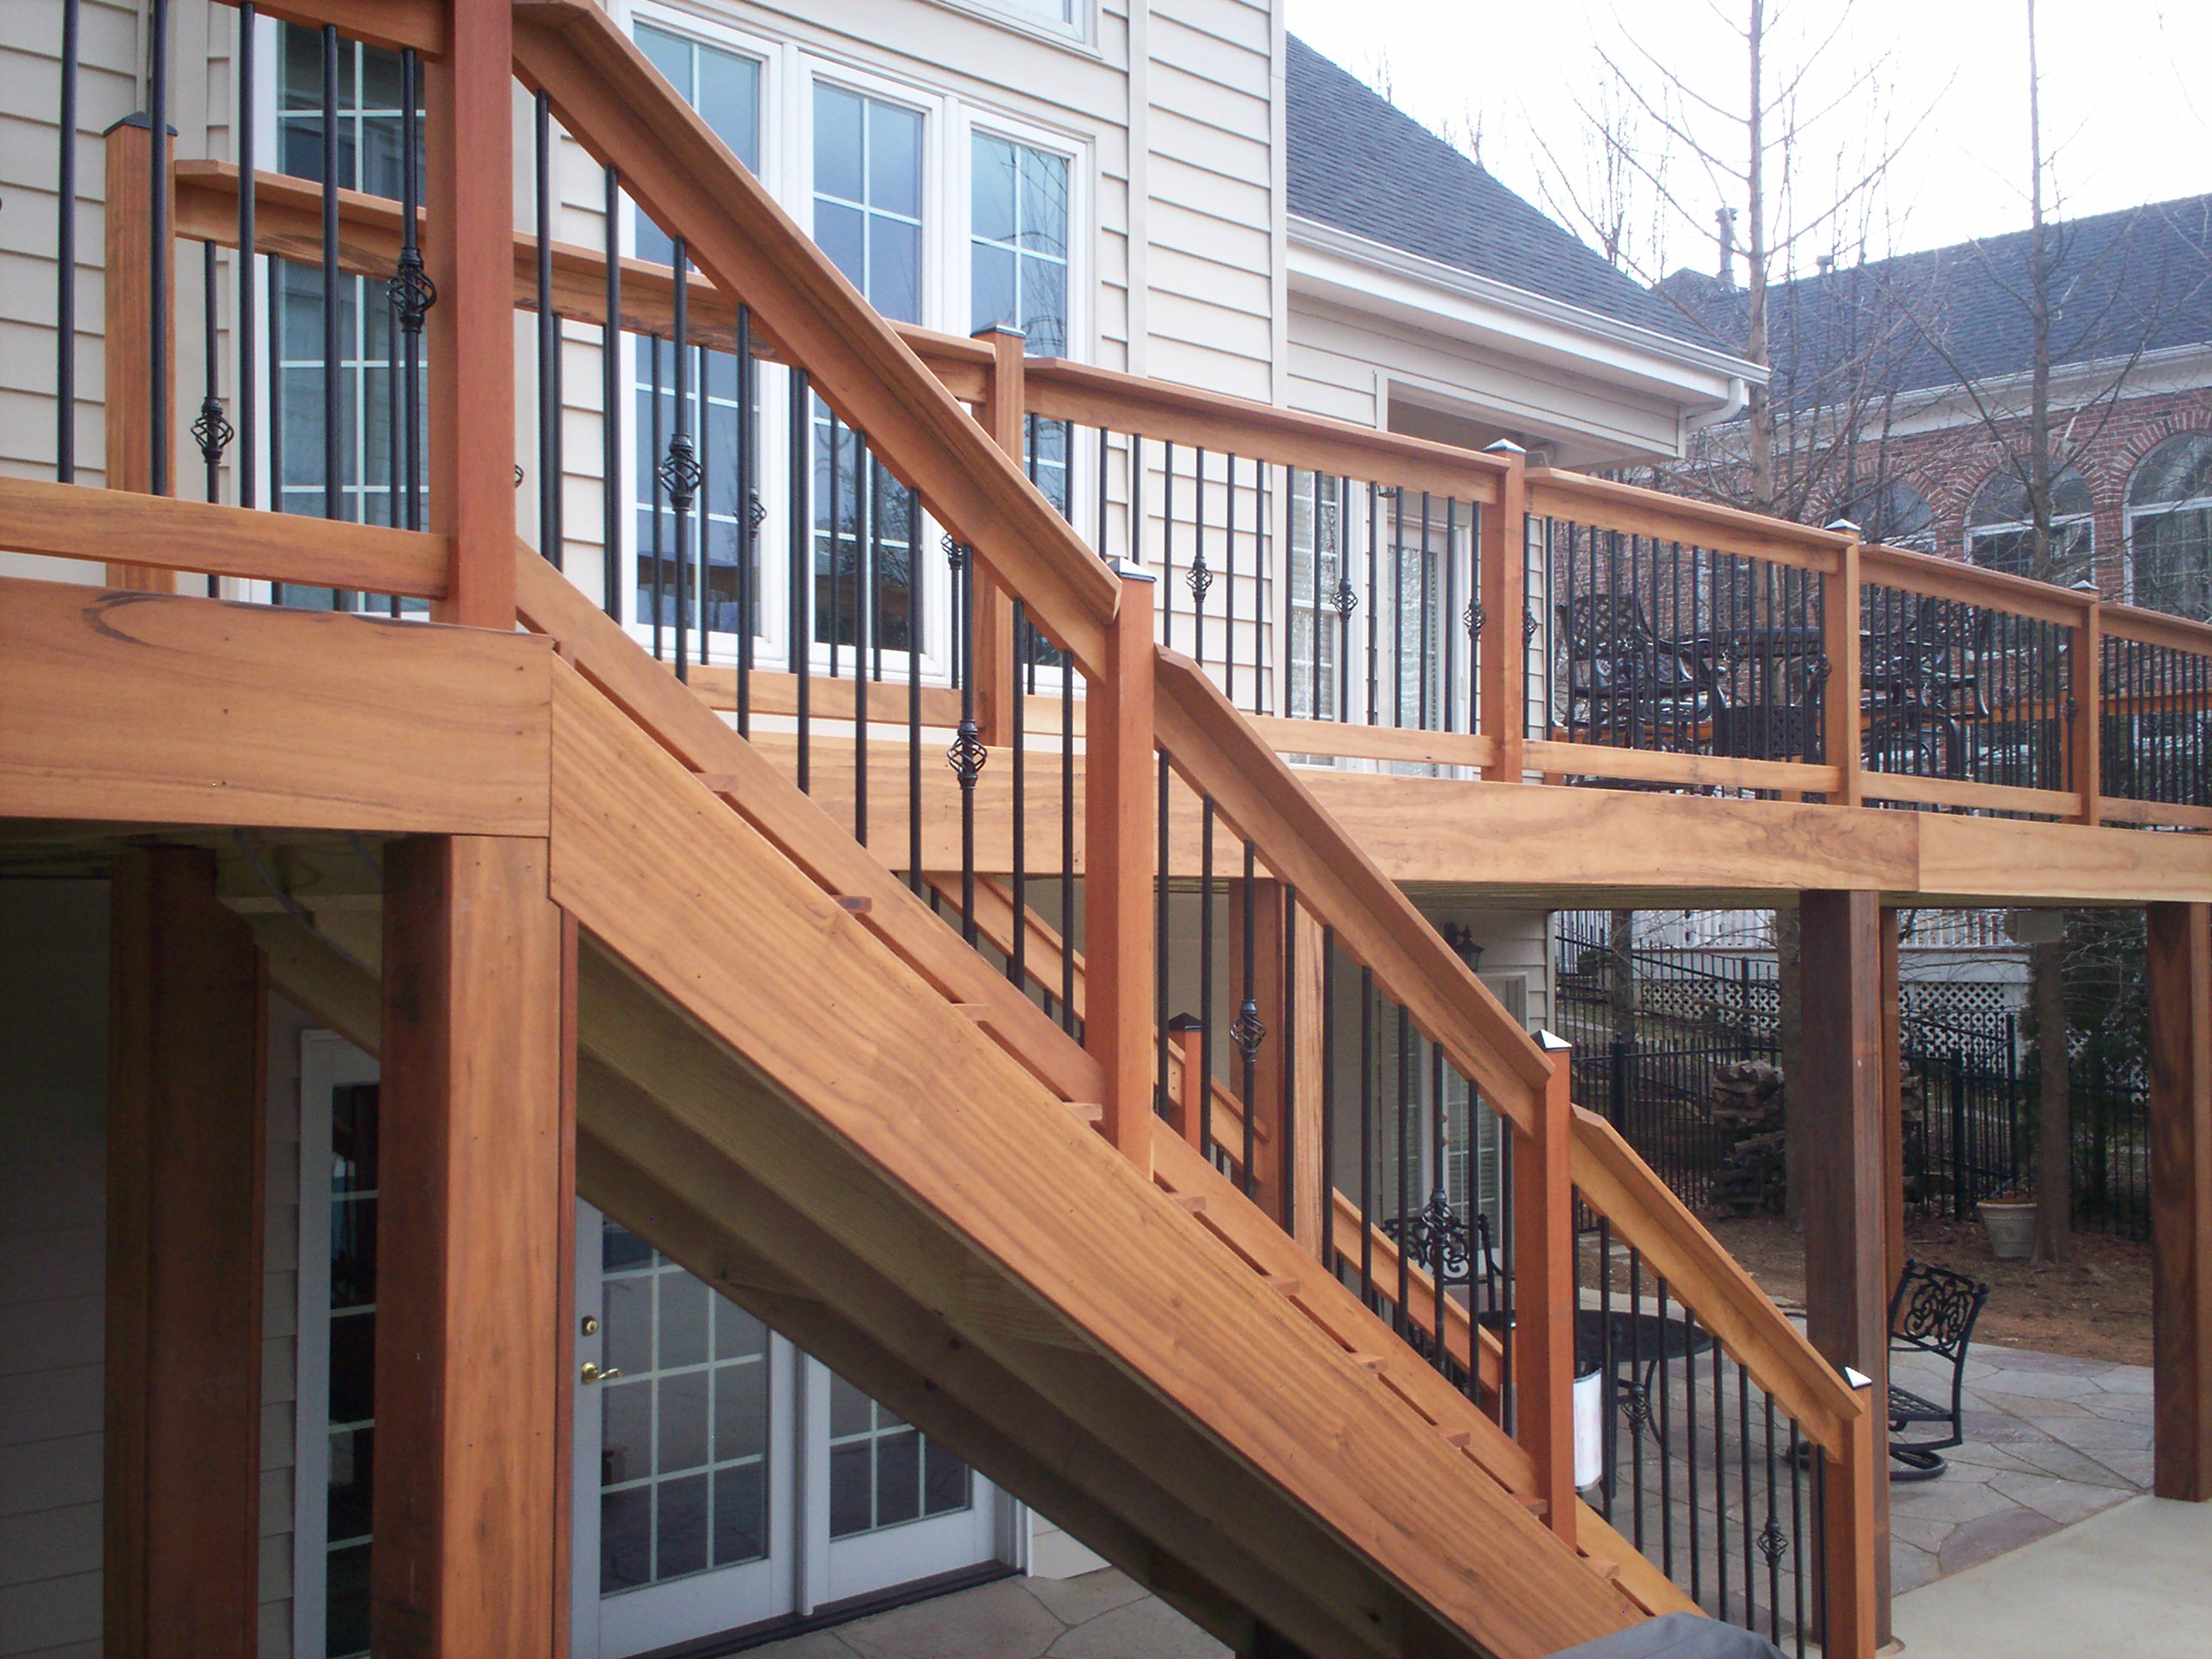 Synthetic Deck Boards | Composite Material for Decks | Tigerwood Decking